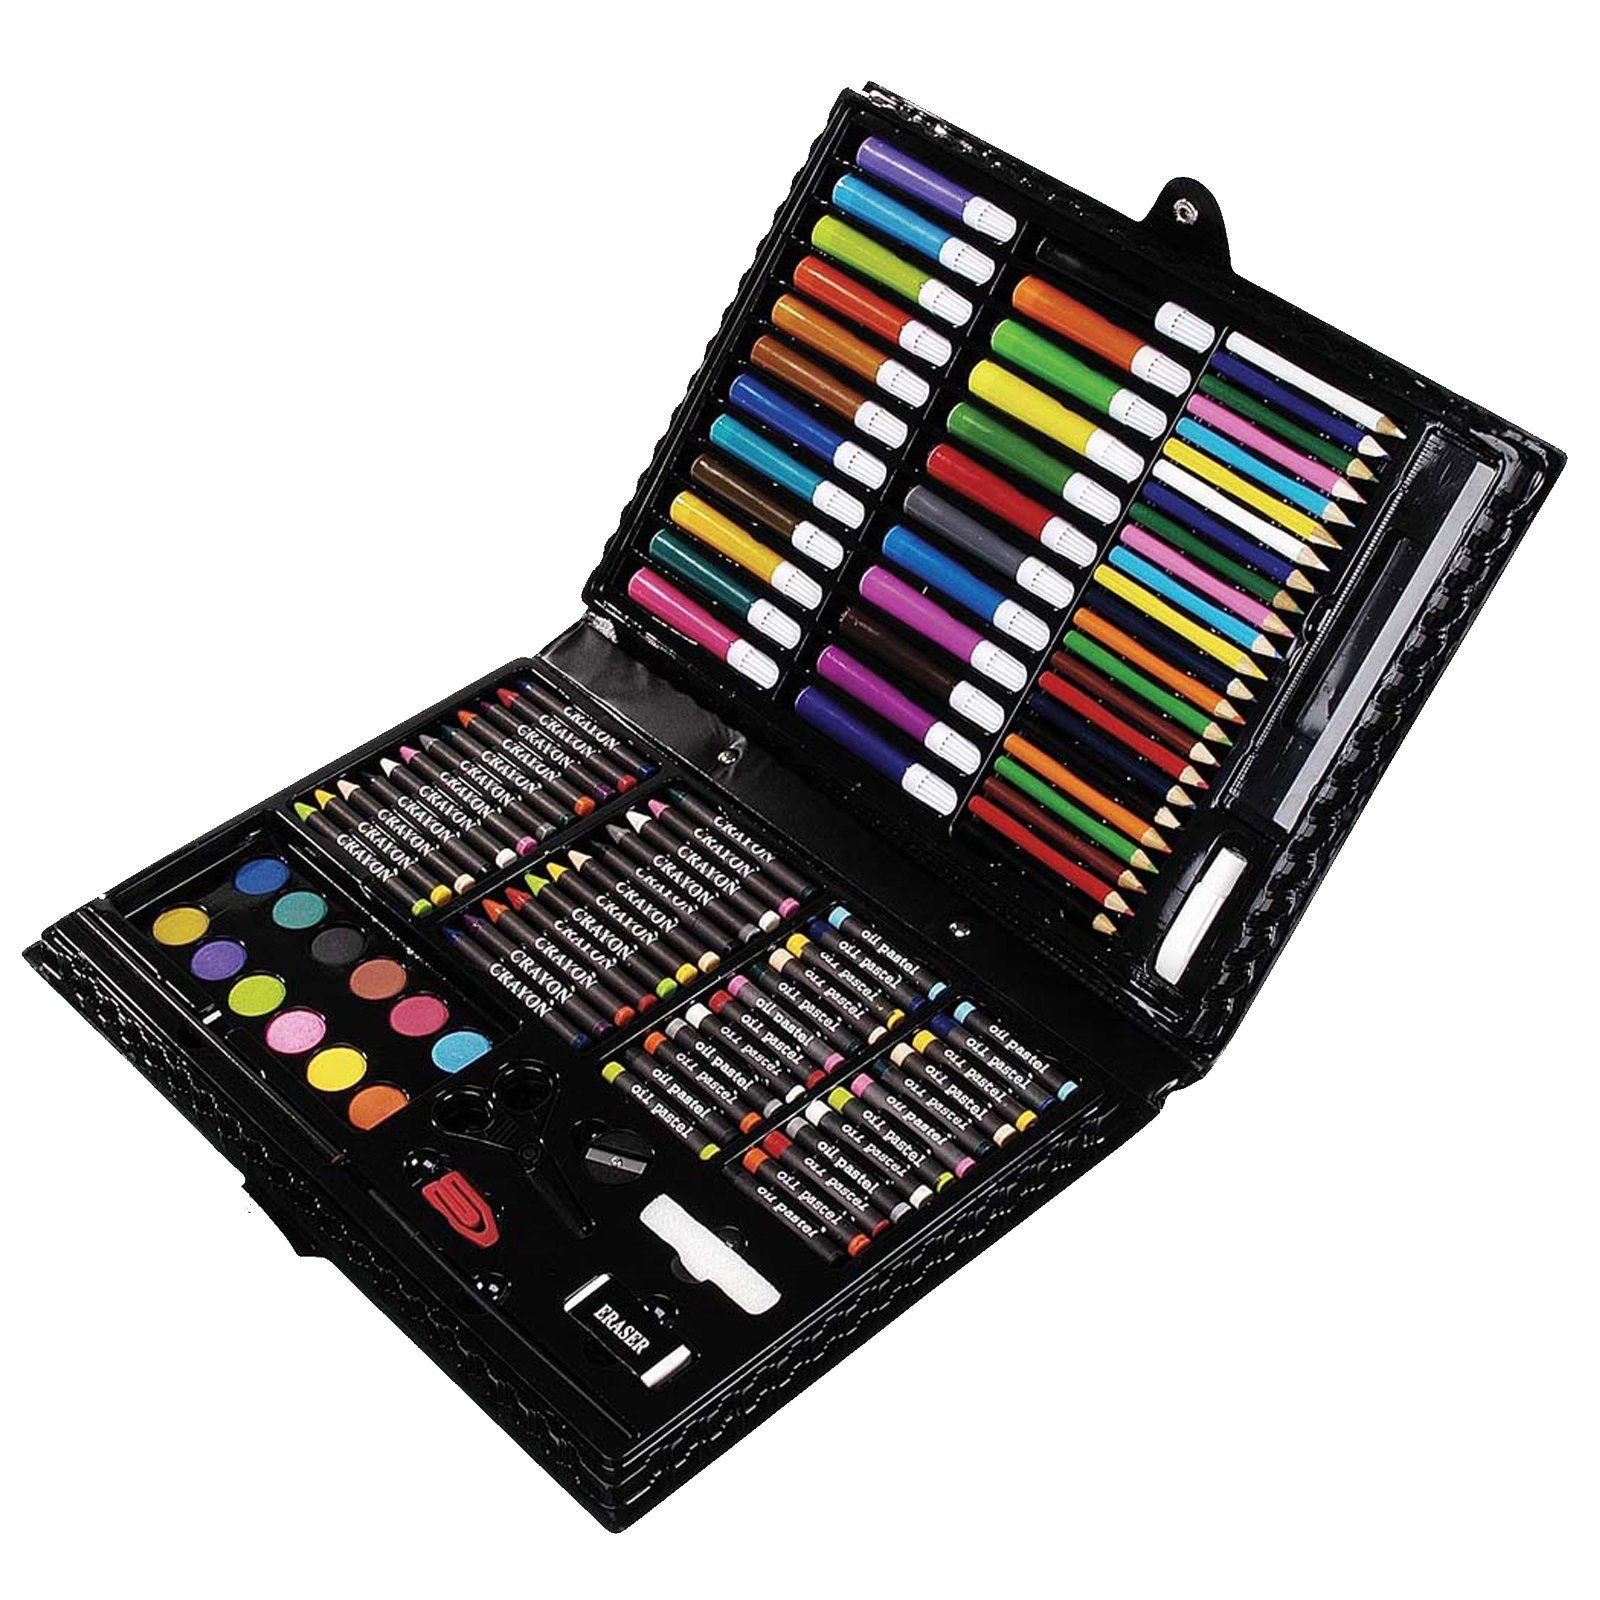 90s junior art set, who didn't had one of these? Artists